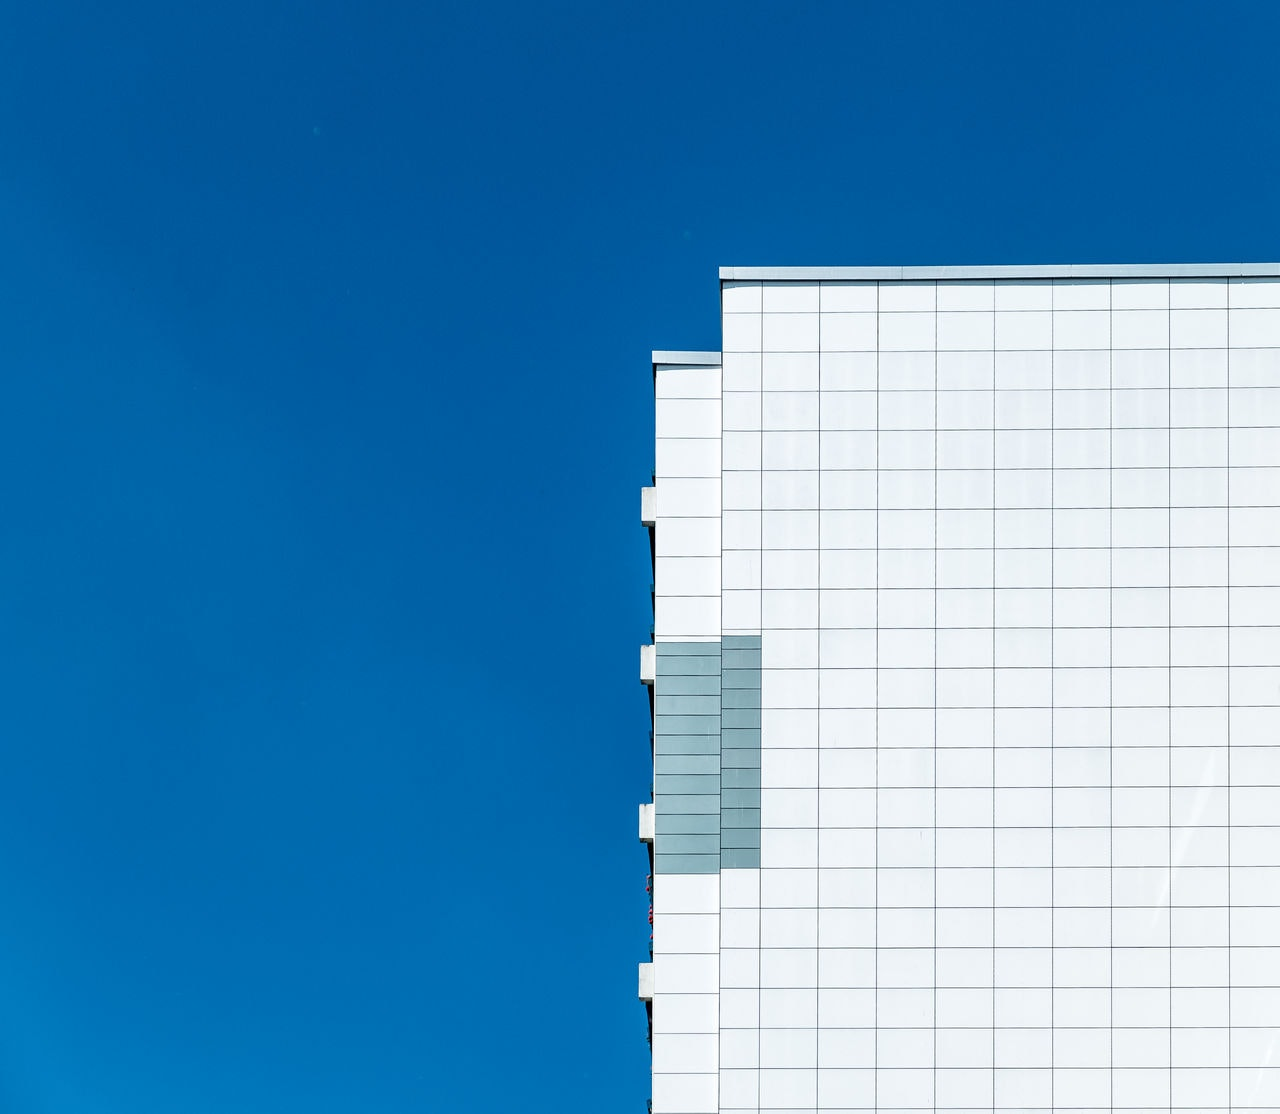 eyeem announces the winners of the minimalist architecture photo